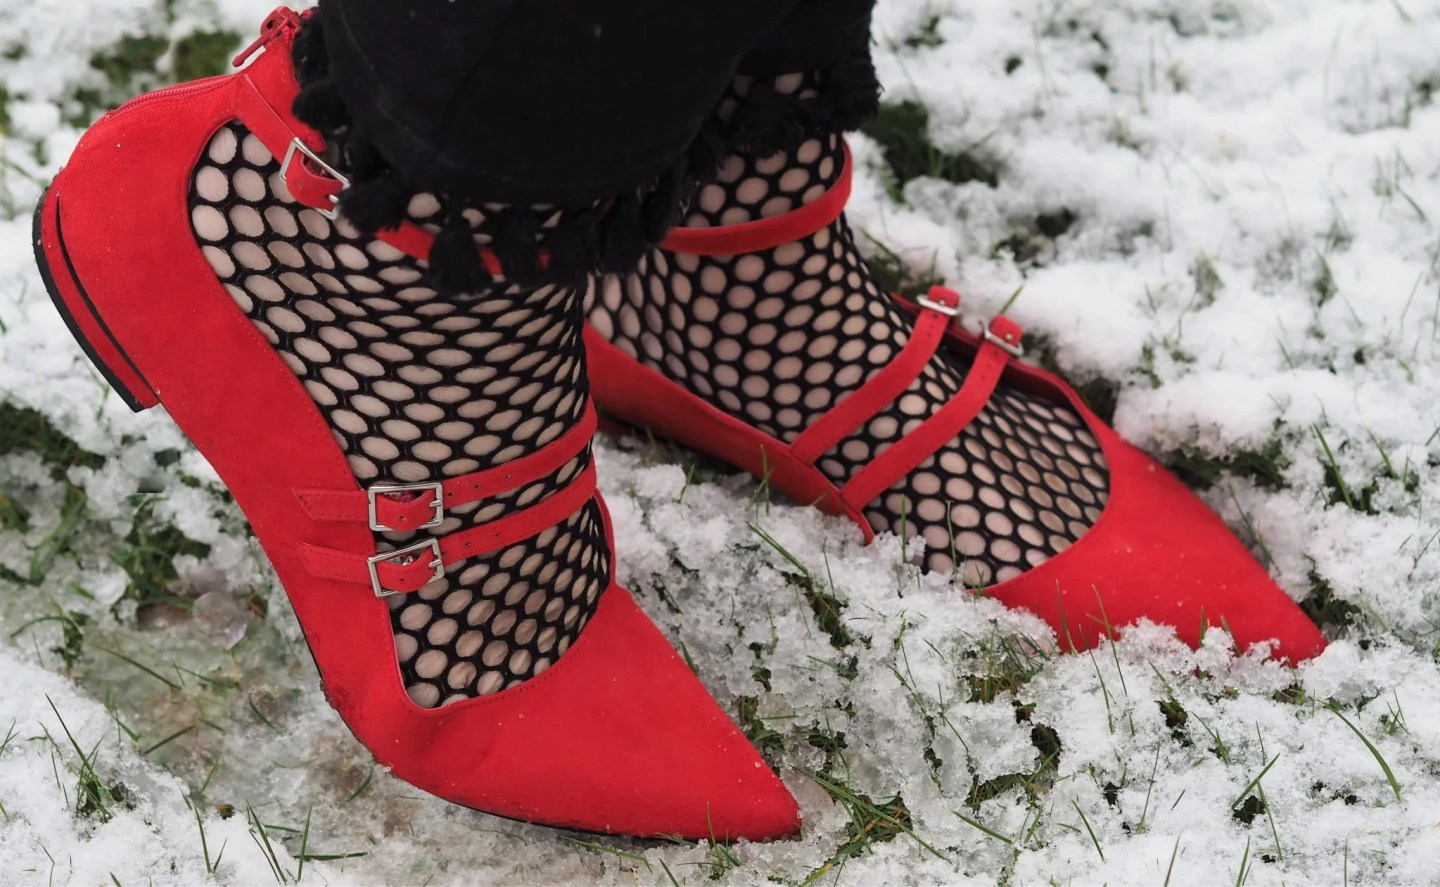 What Lizzy Loves fishnet socks with shoes